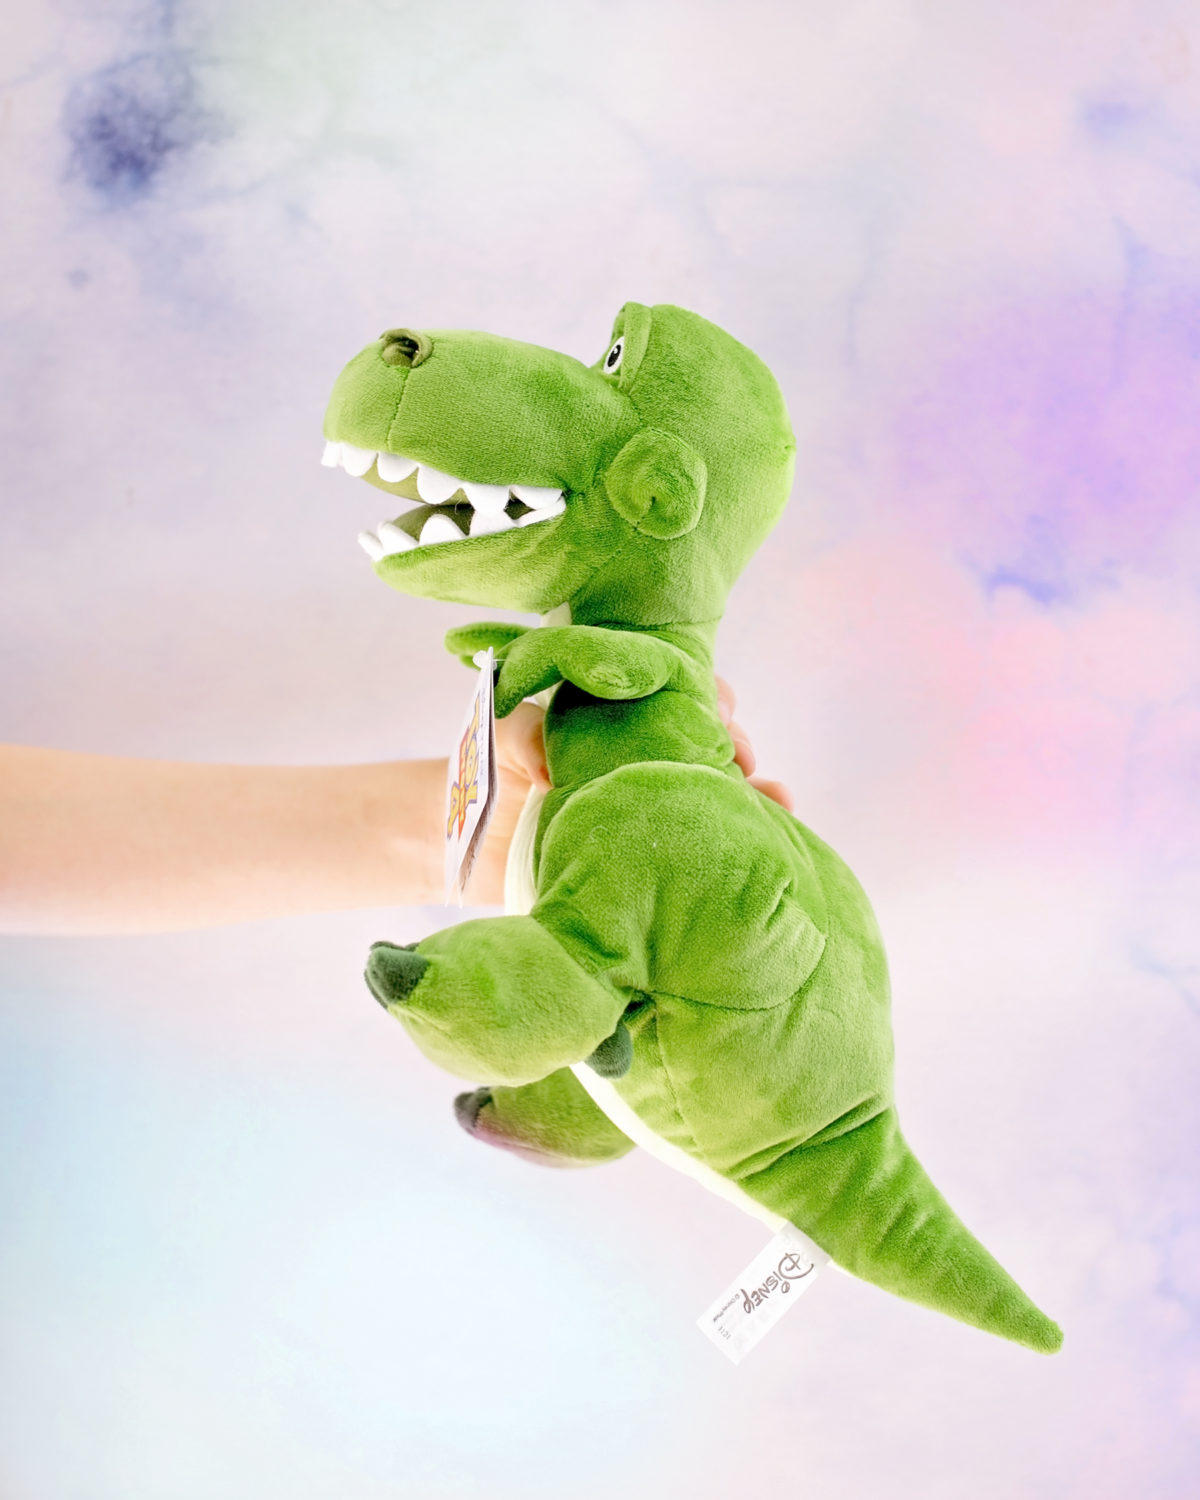 Image shows profile view of Disney Pixar's Toy Story Dinosaur, Rex as a plush toy from SImba Toys. Image by Keep Up With The Jones Family.